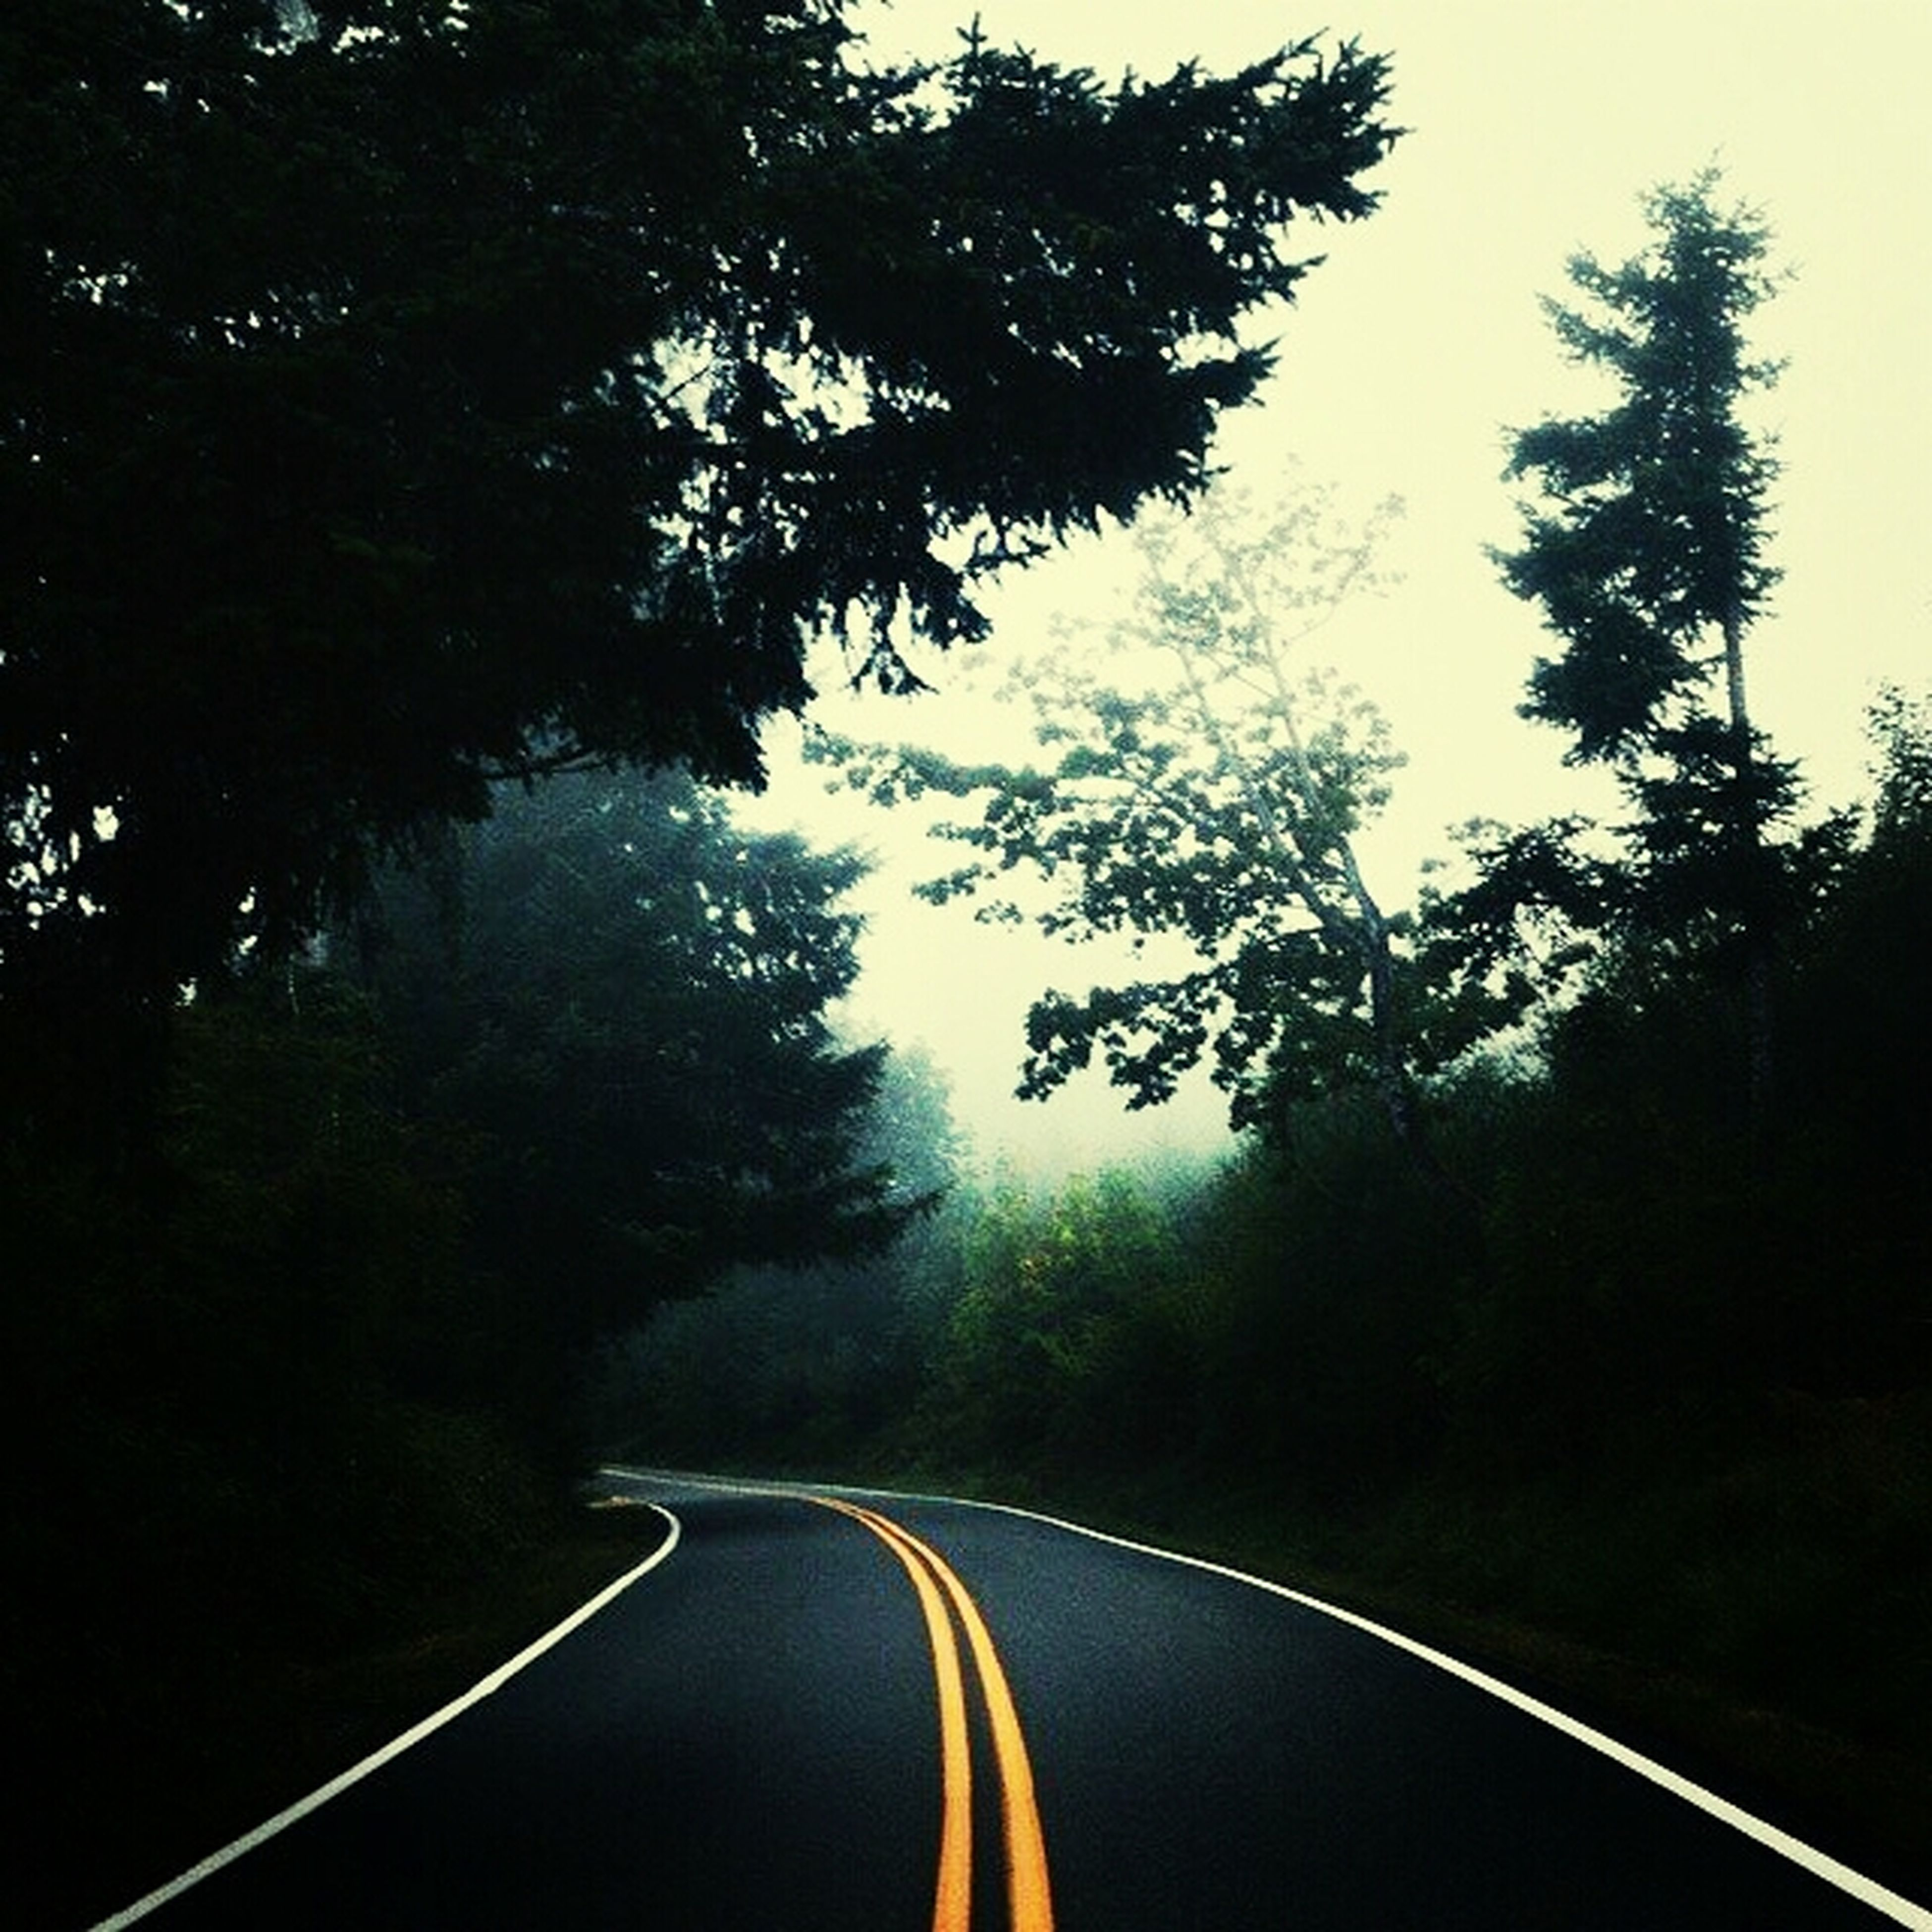 transportation, the way forward, road, diminishing perspective, road marking, tree, vanishing point, country road, windshield, empty road, sky, mode of transport, empty, dividing line, double yellow line, travel, tranquility, nature, asphalt, clear sky